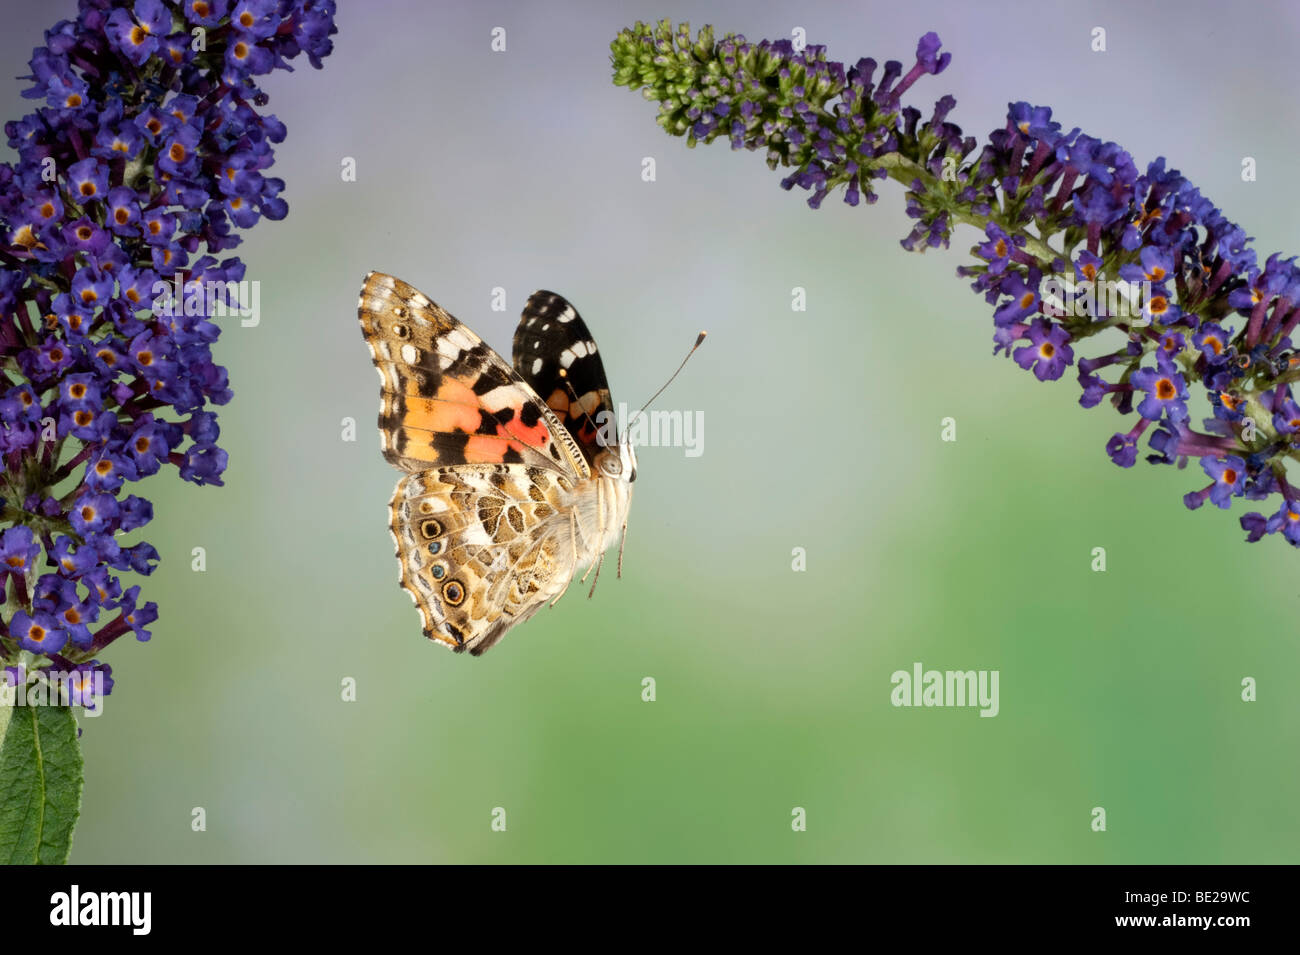 Painted Lady Butterfly Cynthia cardui adult in flight high speed photographic technique flying over buddelia migrant Stock Photo